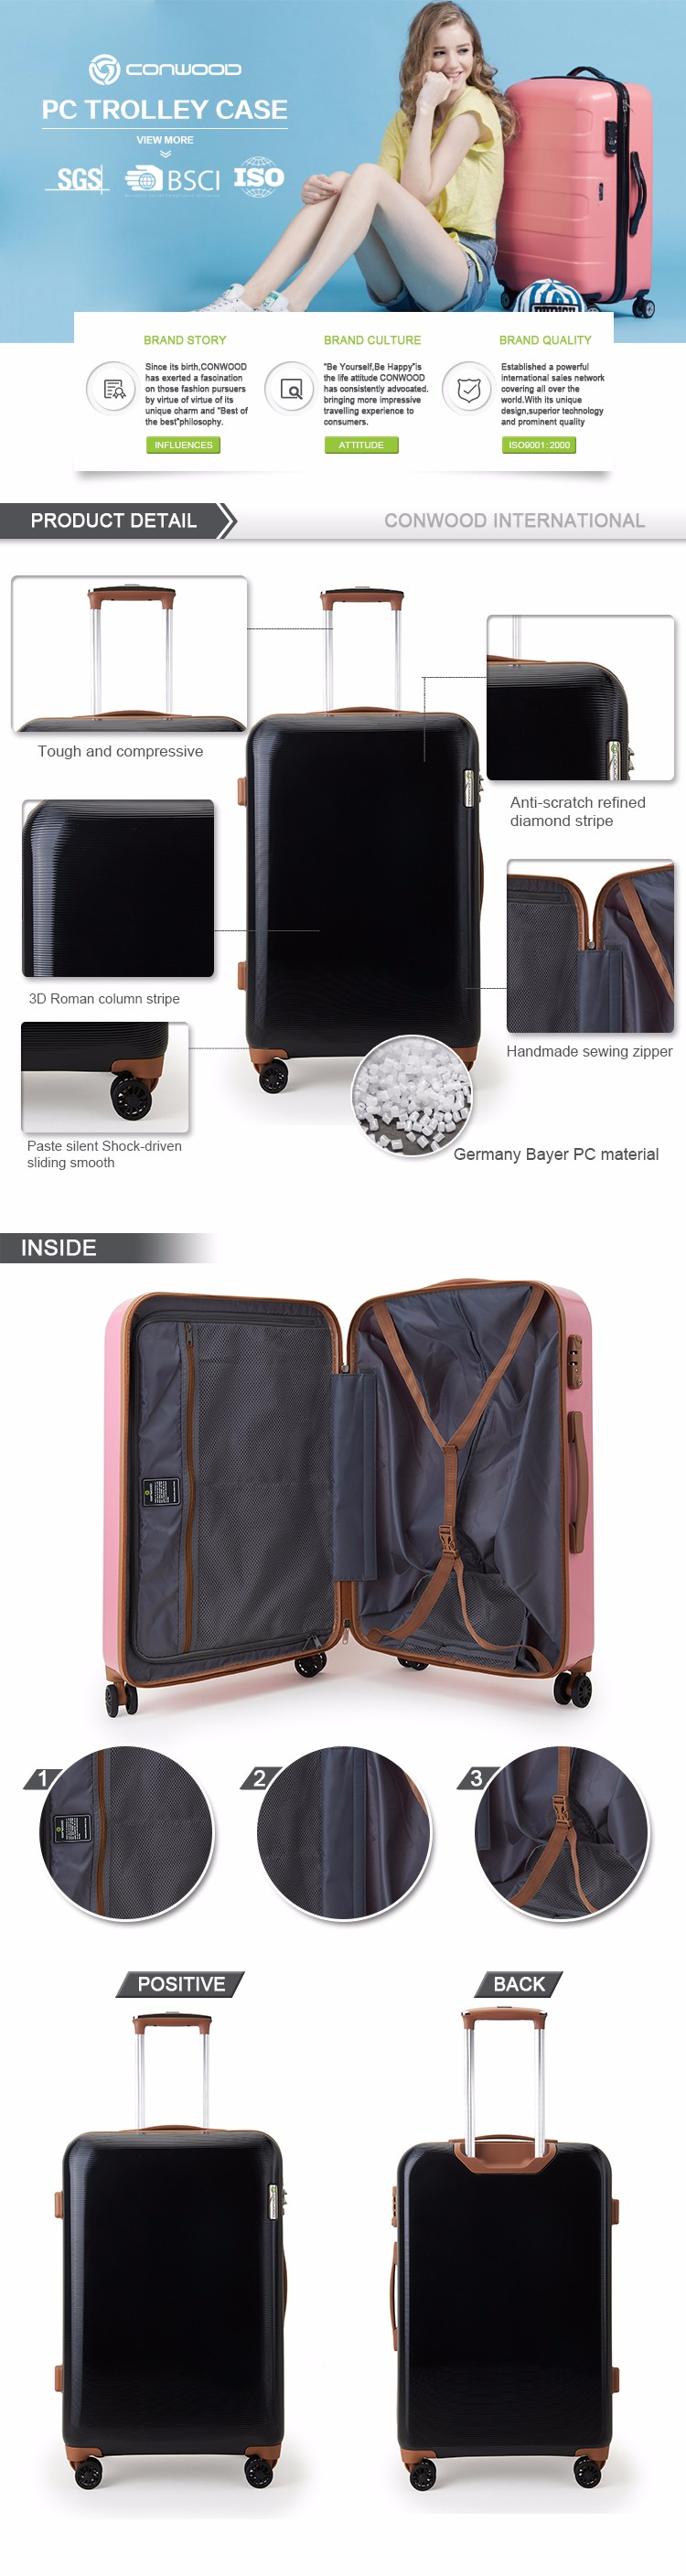 Suitcase With Drawers Attractive Design Pc Luggage Suitcase Bag With Drawers Buy